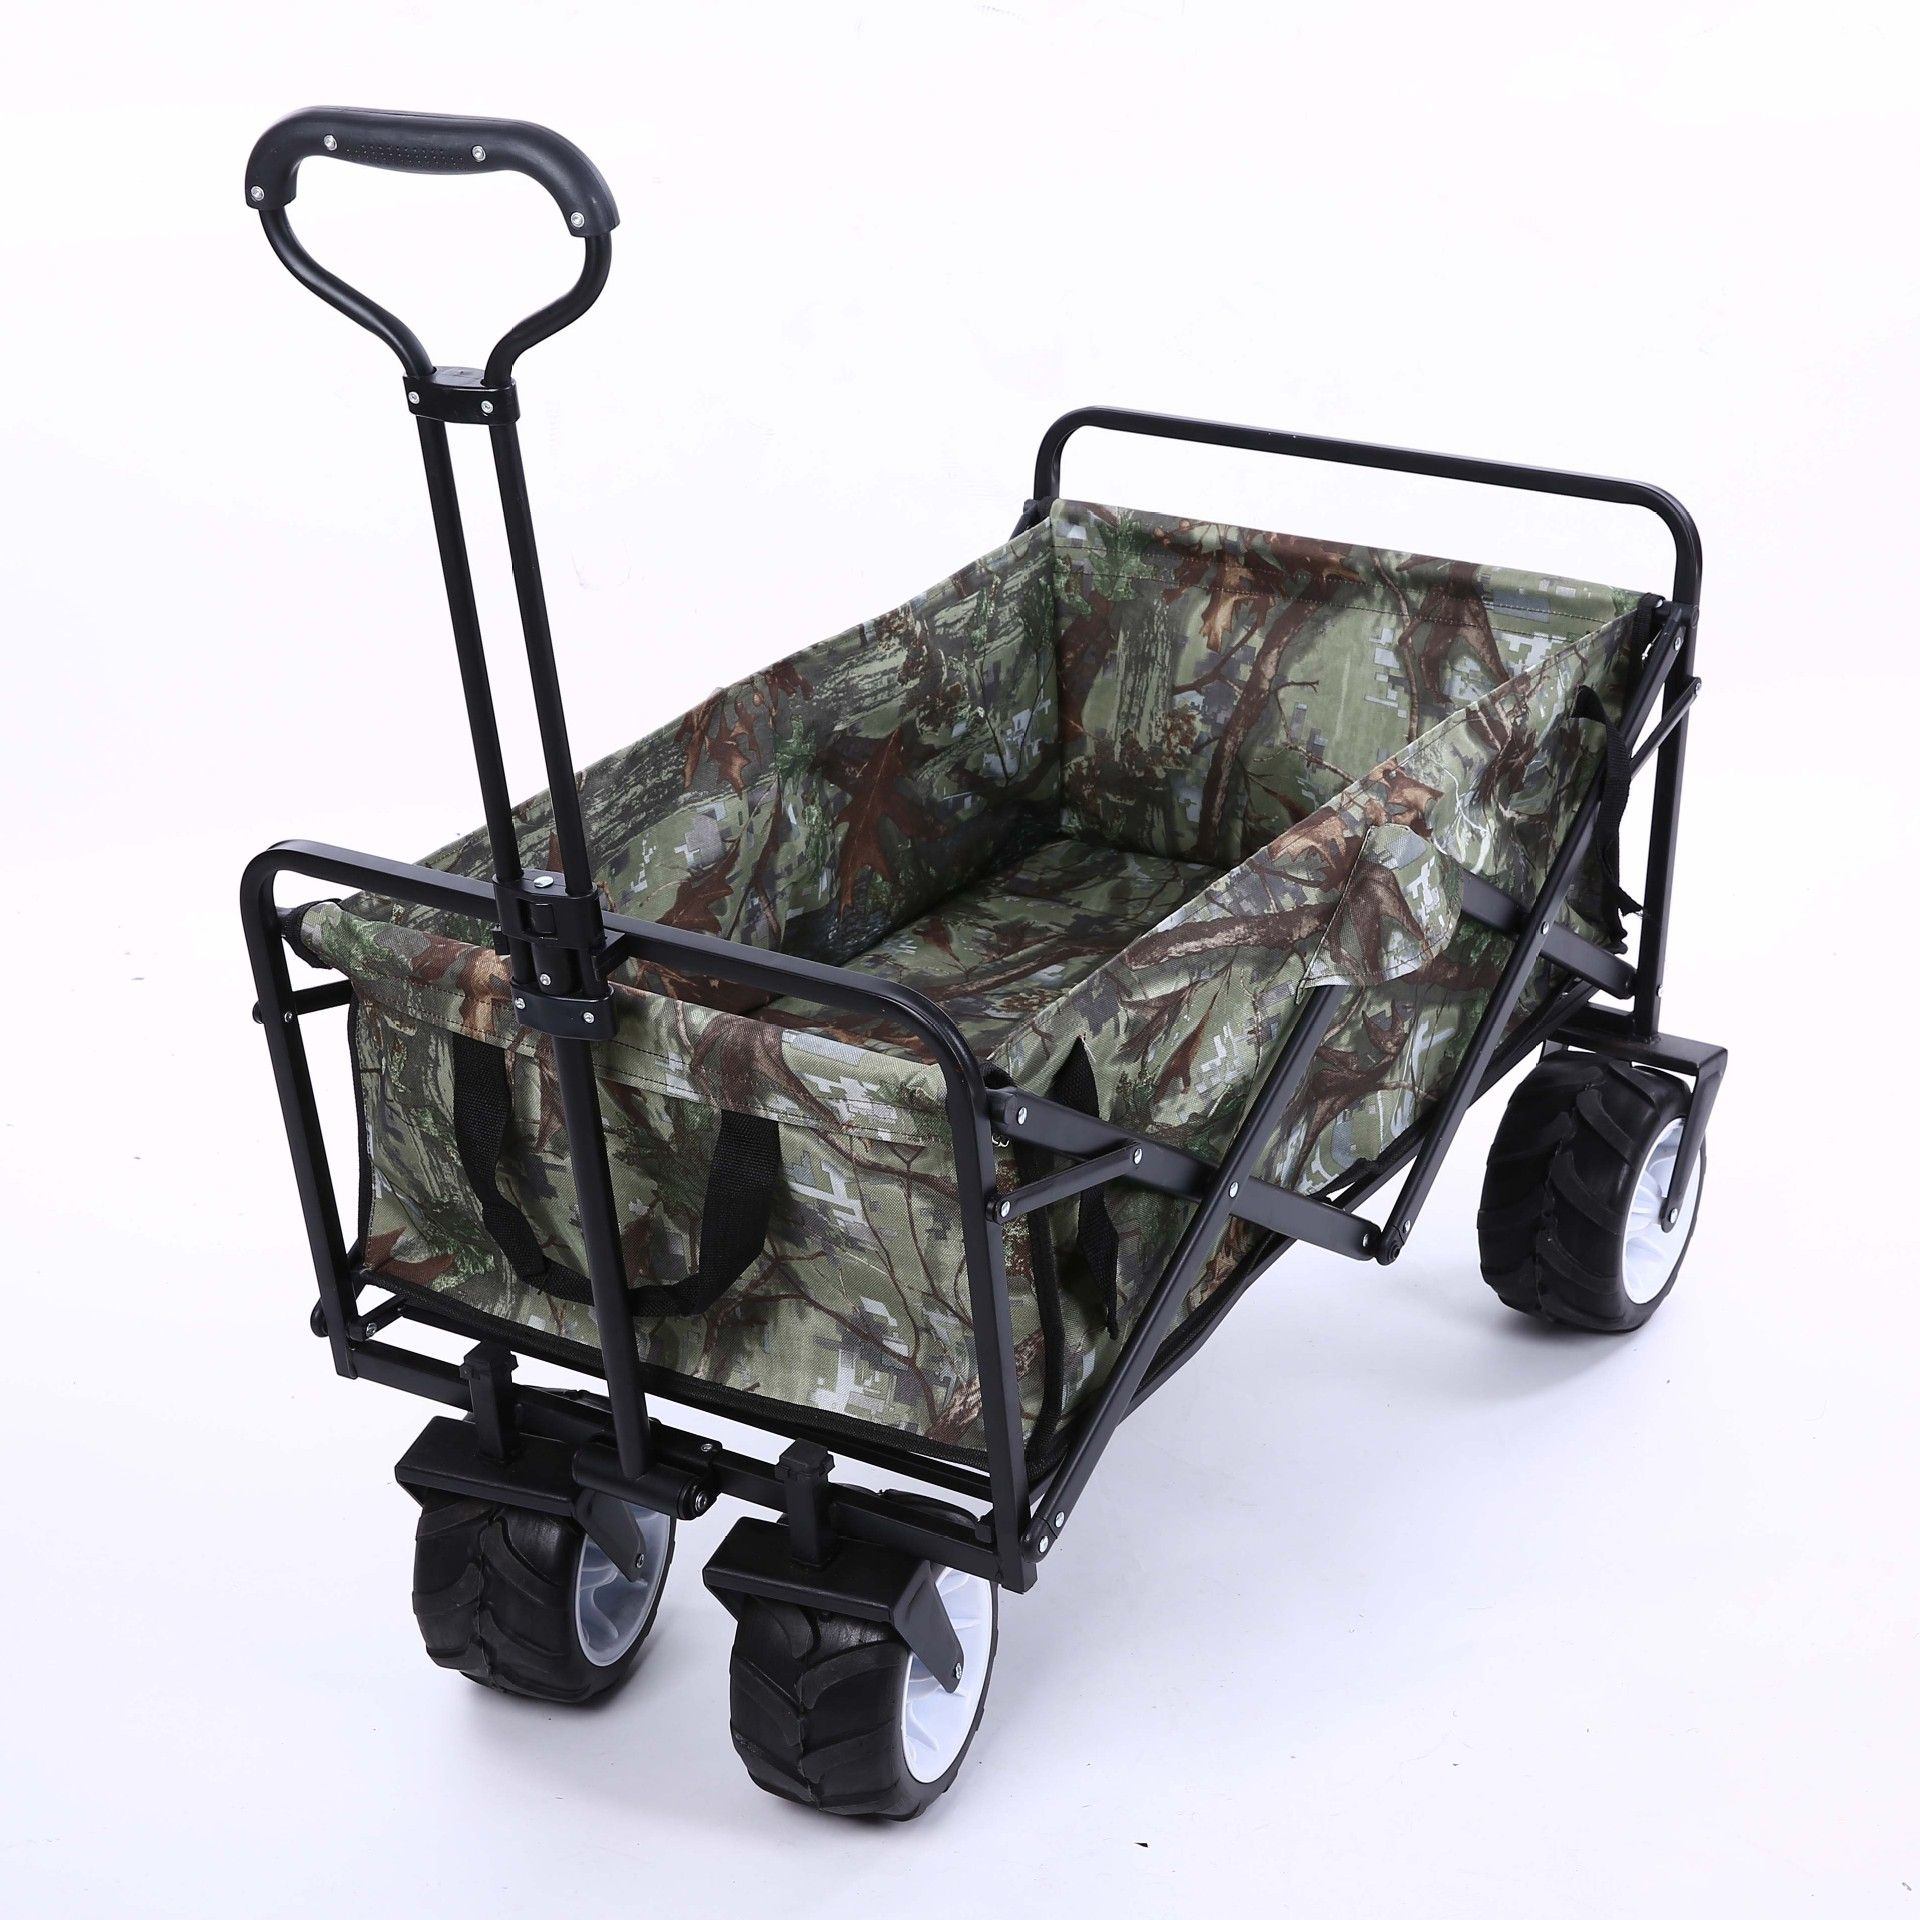 LK677 Stainless Steel Camouflage Pet Stroller Portable Folding Shopping Cart Four-wheeled Trolley for Outdoor Camping Fishing